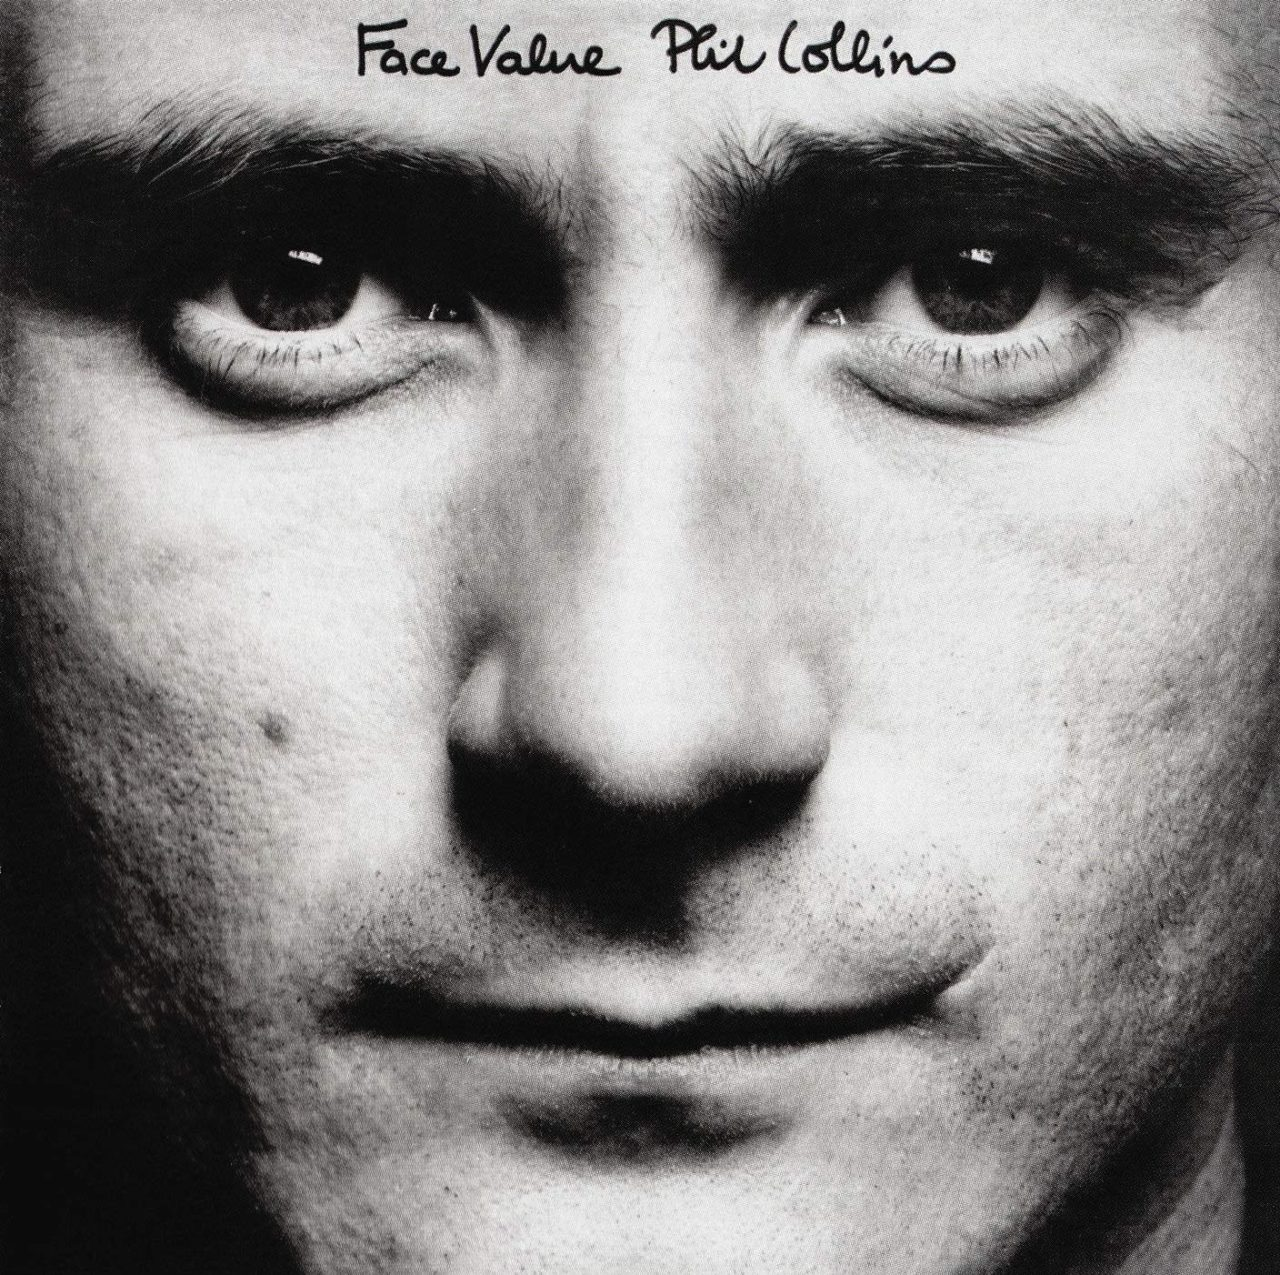 Phil Collins Face Value